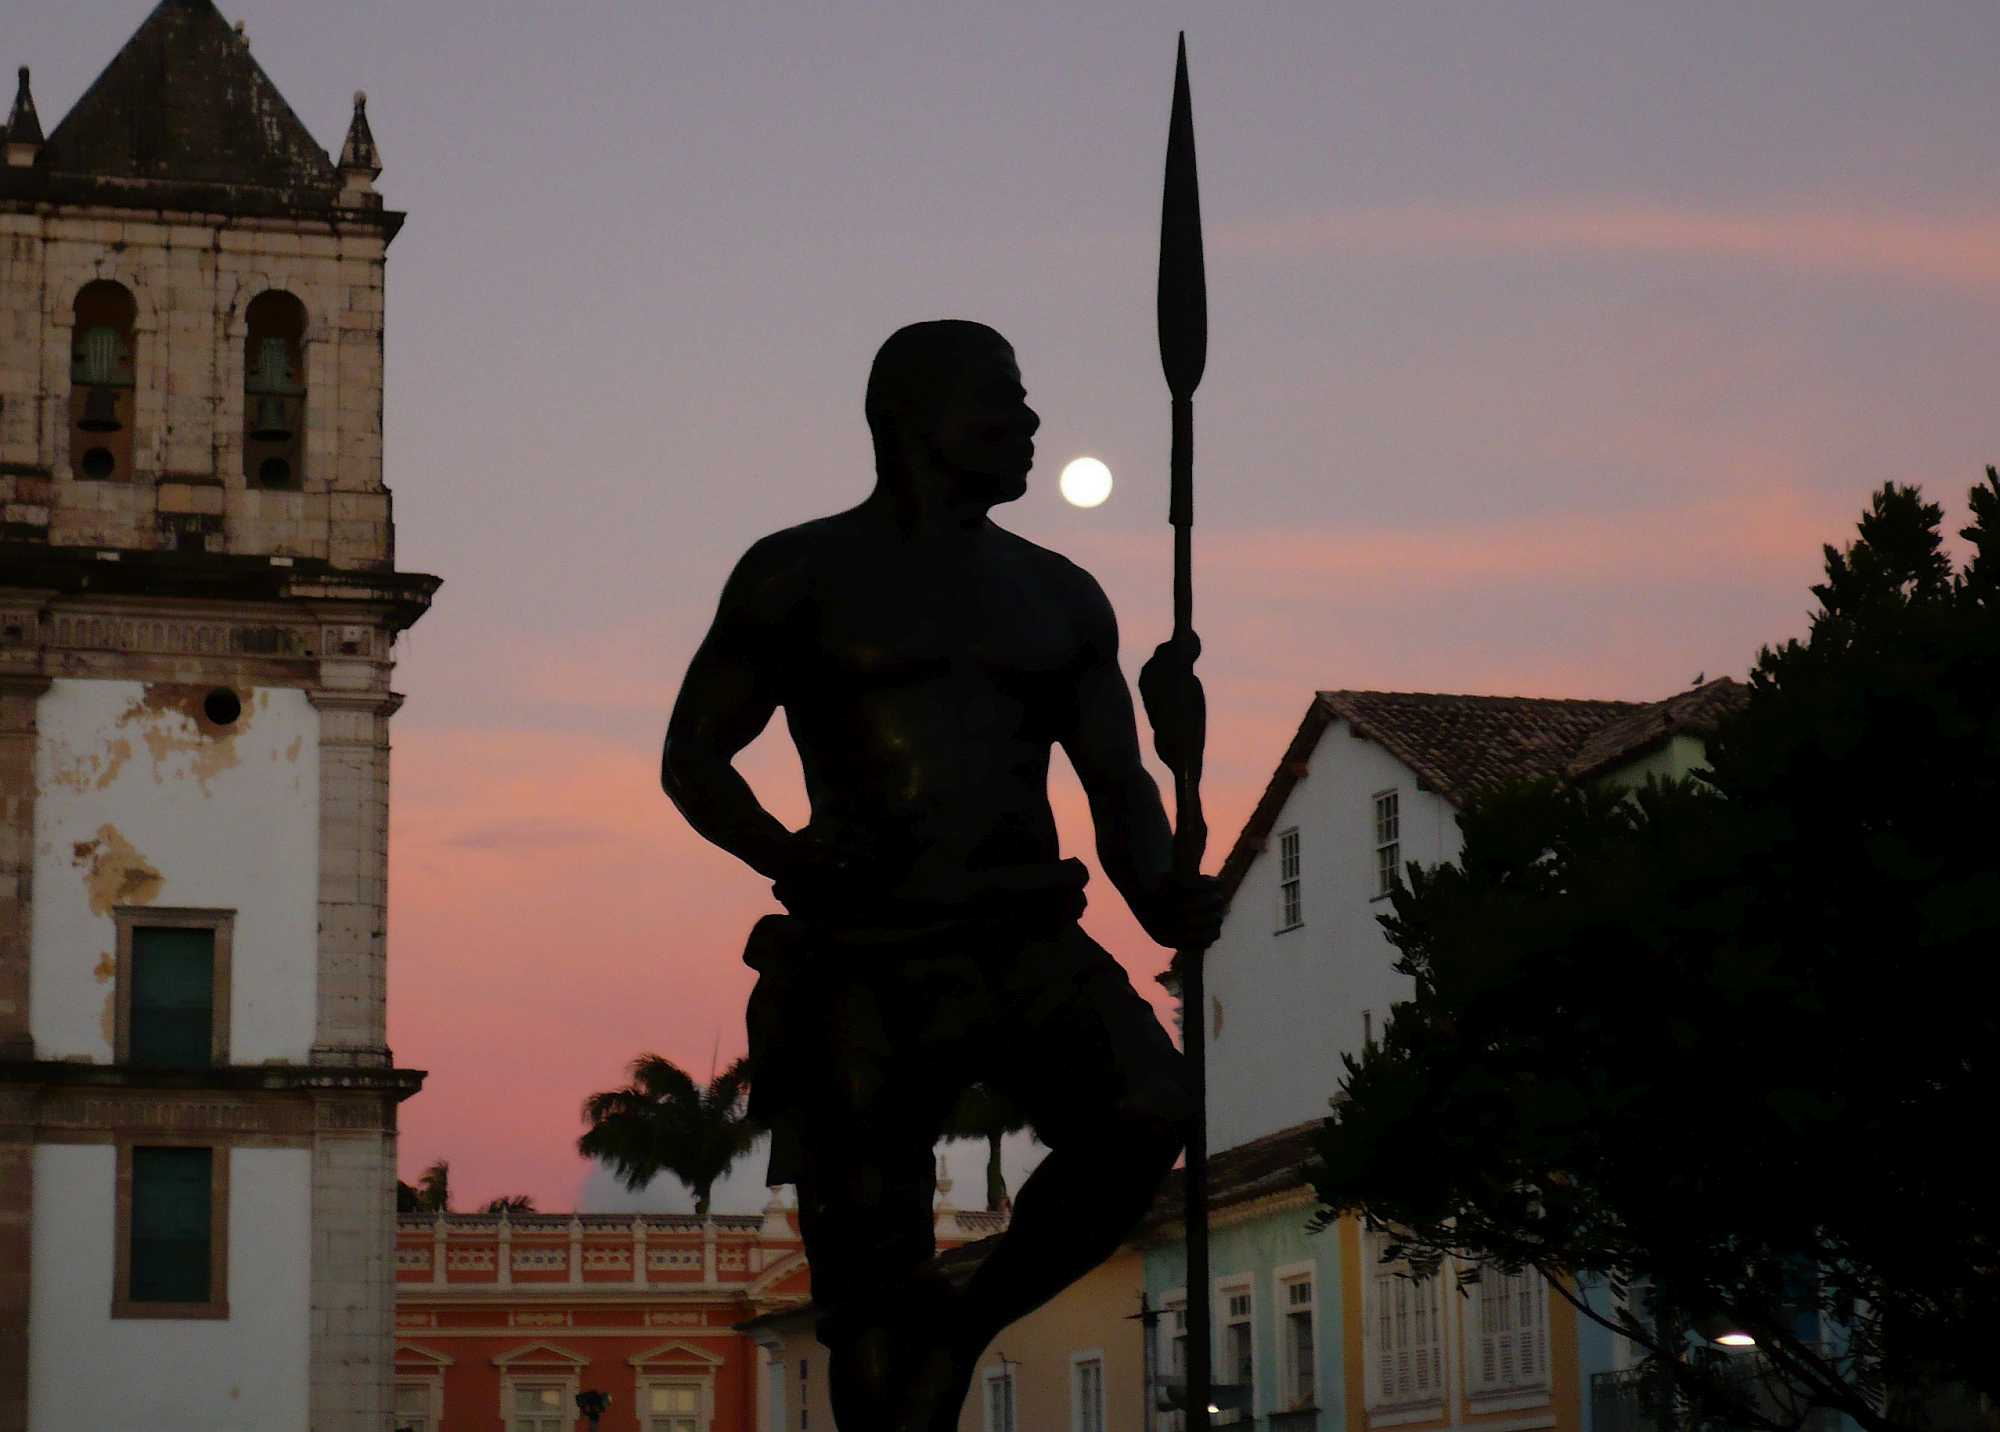 Bronze sculpture of Zumbi dos Palmares, in Salvador, Bahia state